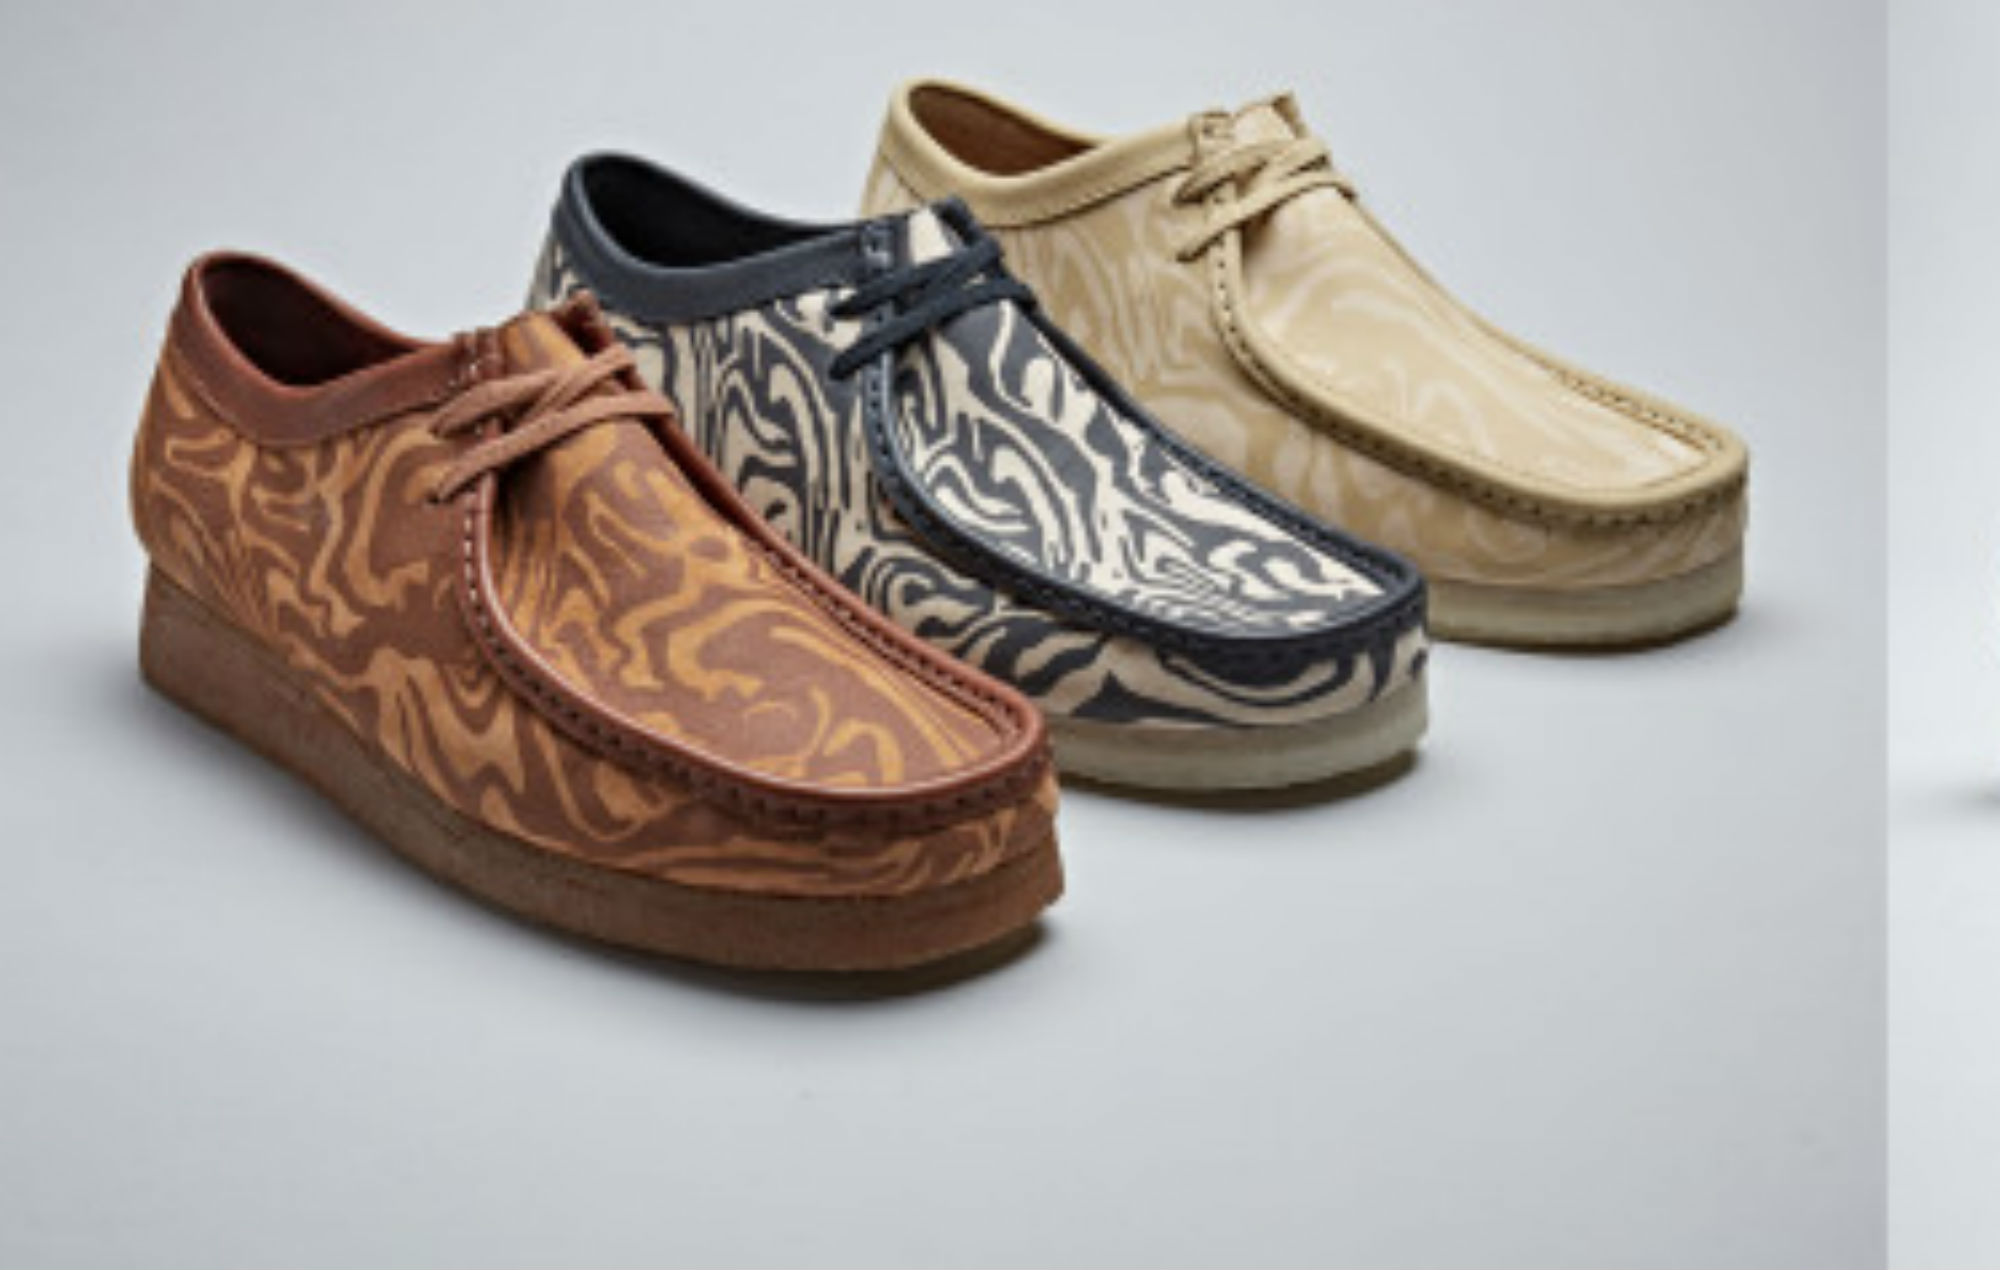 new cheap discount up to 60% latest selection Shoe Tang Clan - check out the new Wu shoes from Clarks: NME